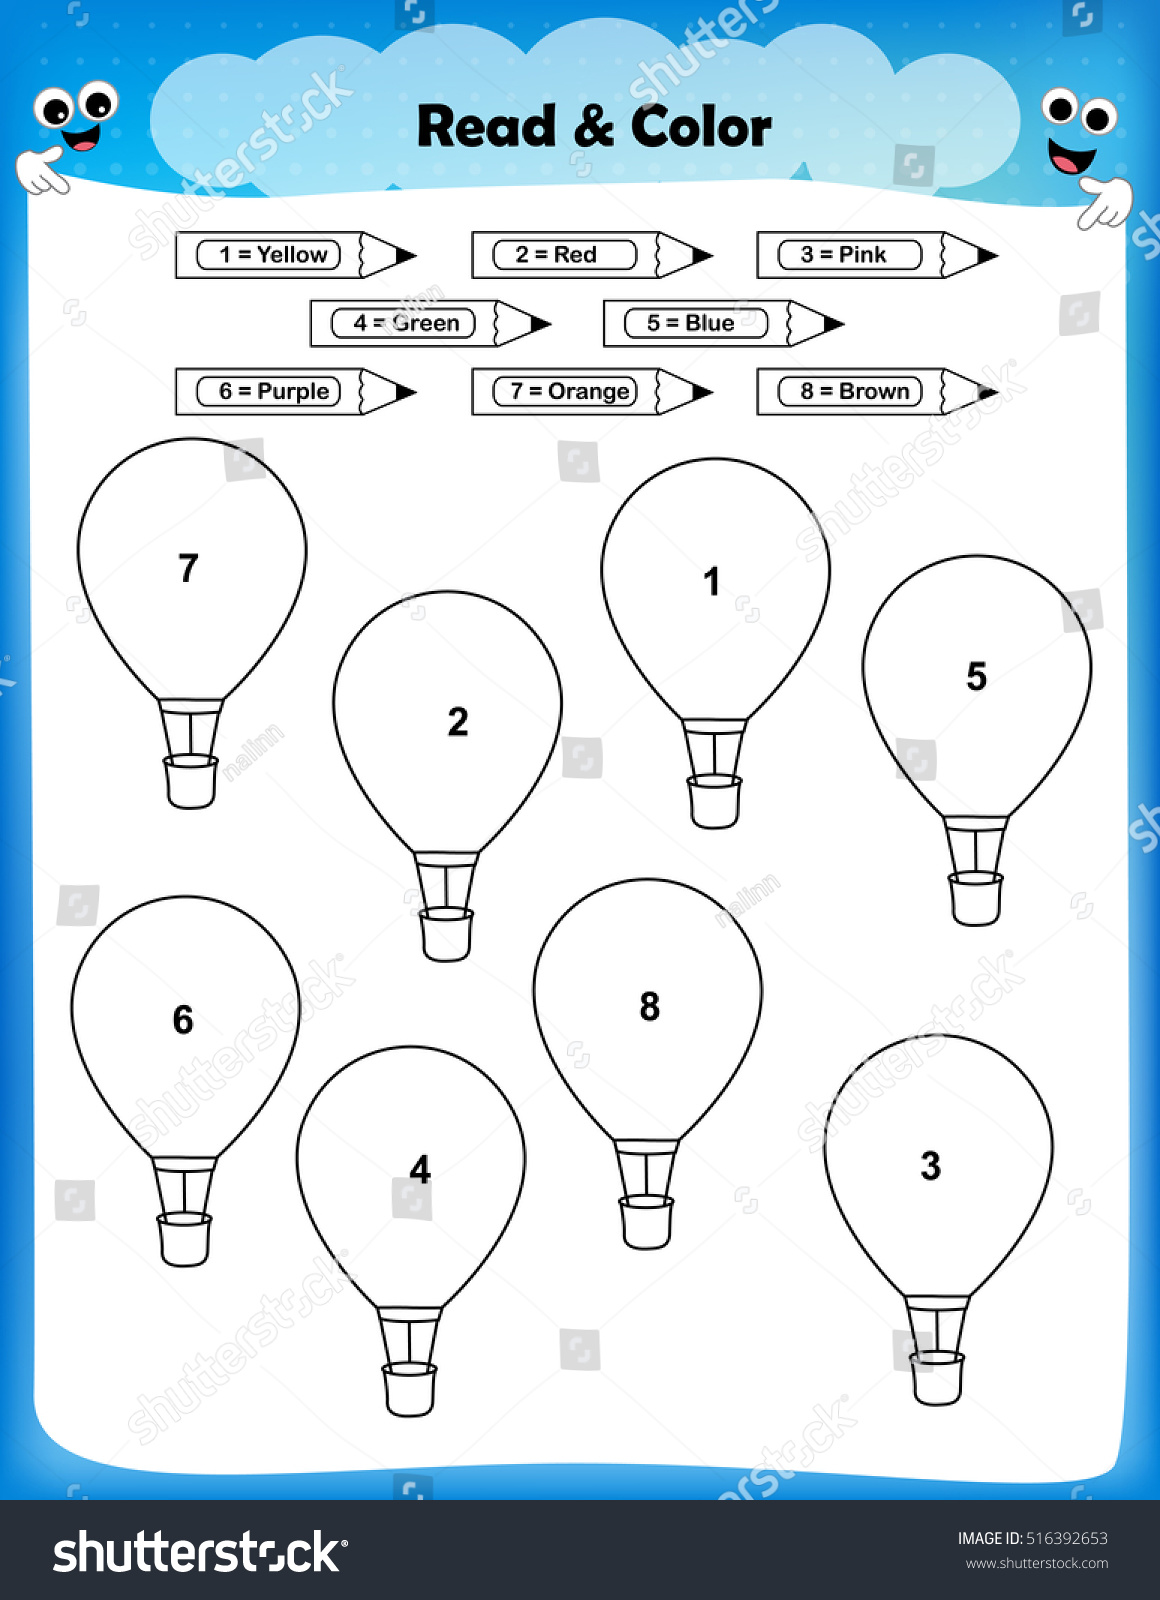 worksheet color the balloons according to the numbers worksheet for preschool kids - Color Purple Worksheets For Preschool